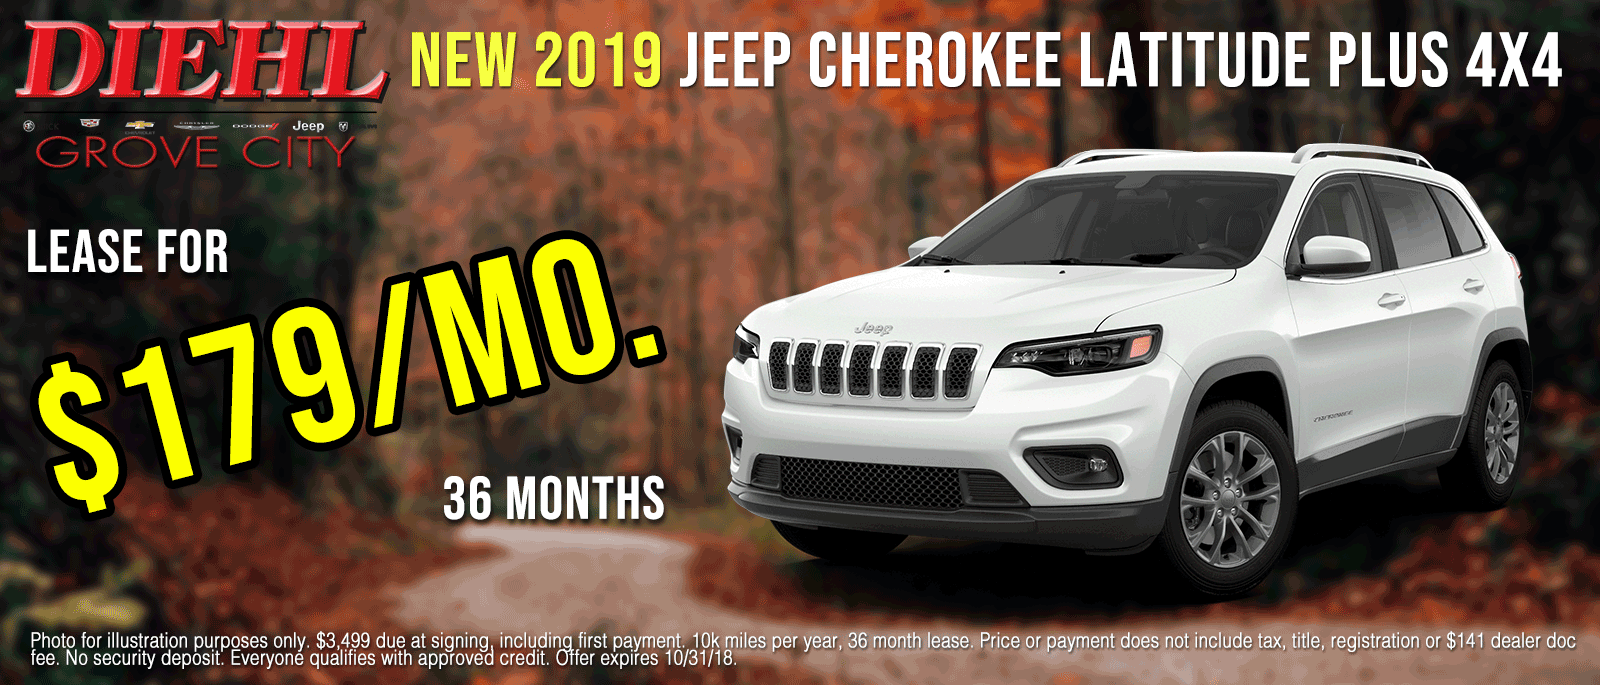 J1128-2019-jeep-Cherokee-latitude-plus-Oct Grove city new vehicle specials diehl of grove city new vehicle specials jeep specials ram specials dodge specials Chrysler specials new specials cdjr specials diehl auto diehl specials grove city pa